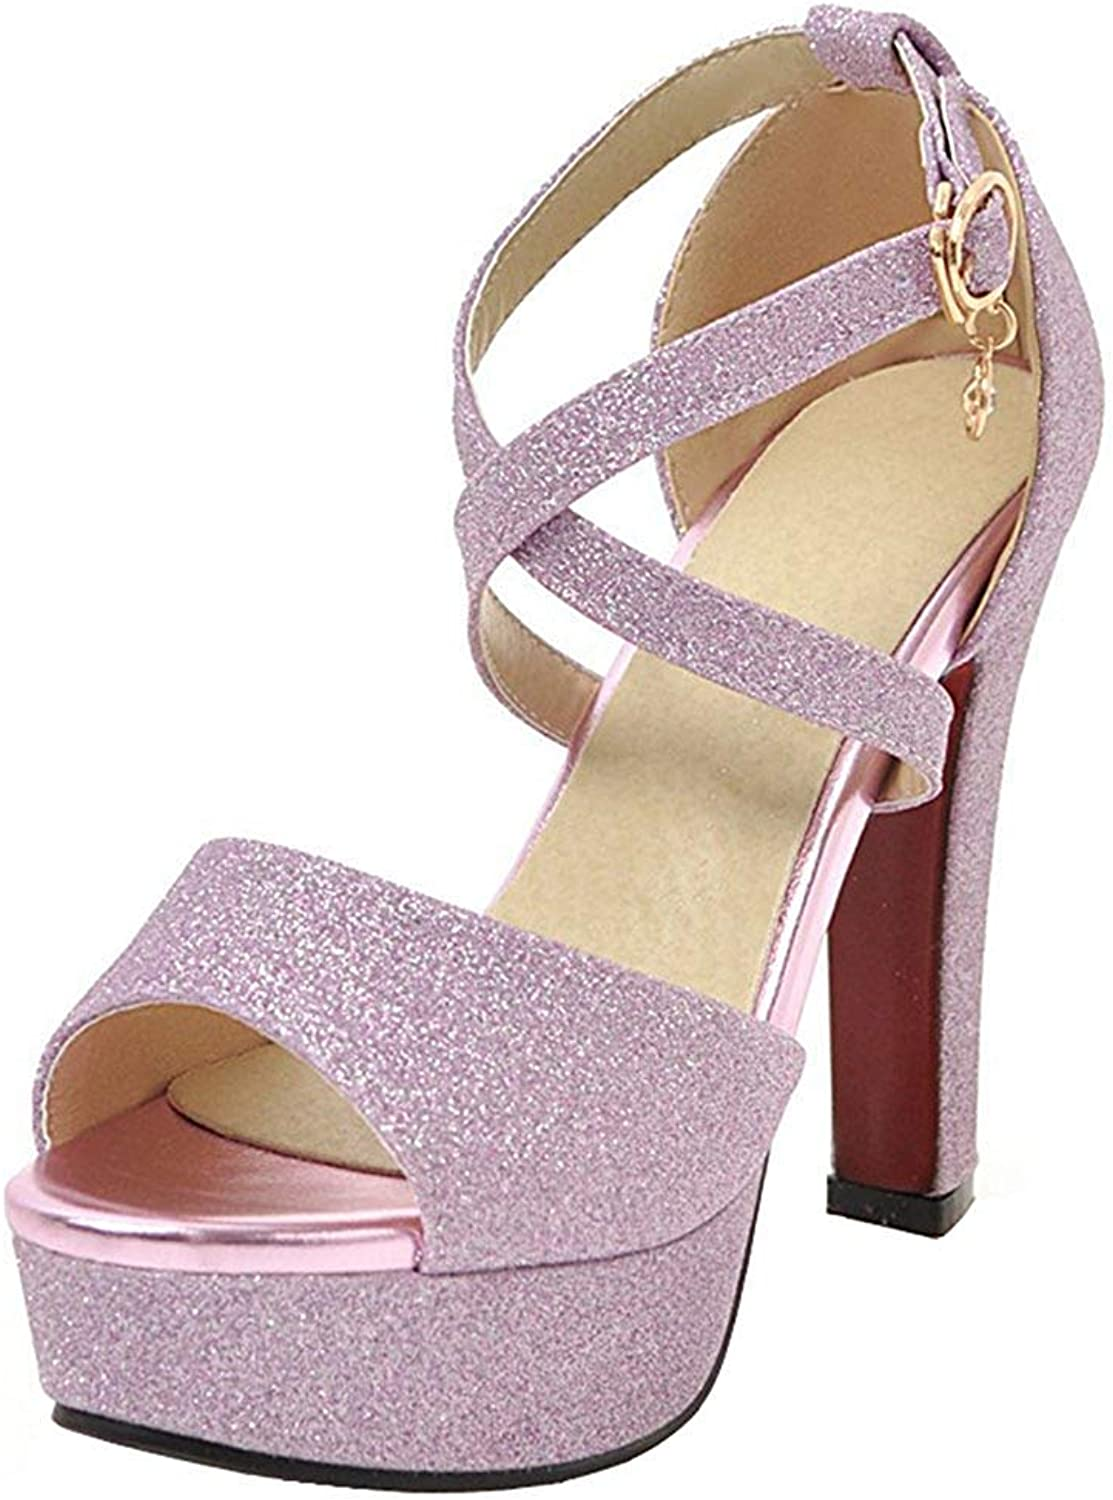 Wallhewb Women's Fashion Sequined Peep Sandals - Buckle Cross Strap Platform - Chunky High Heels Club shoes Sweet Comfortable Overlapping Rubber Sole Leather Joker Dress gold 4 M US Chunky shoes